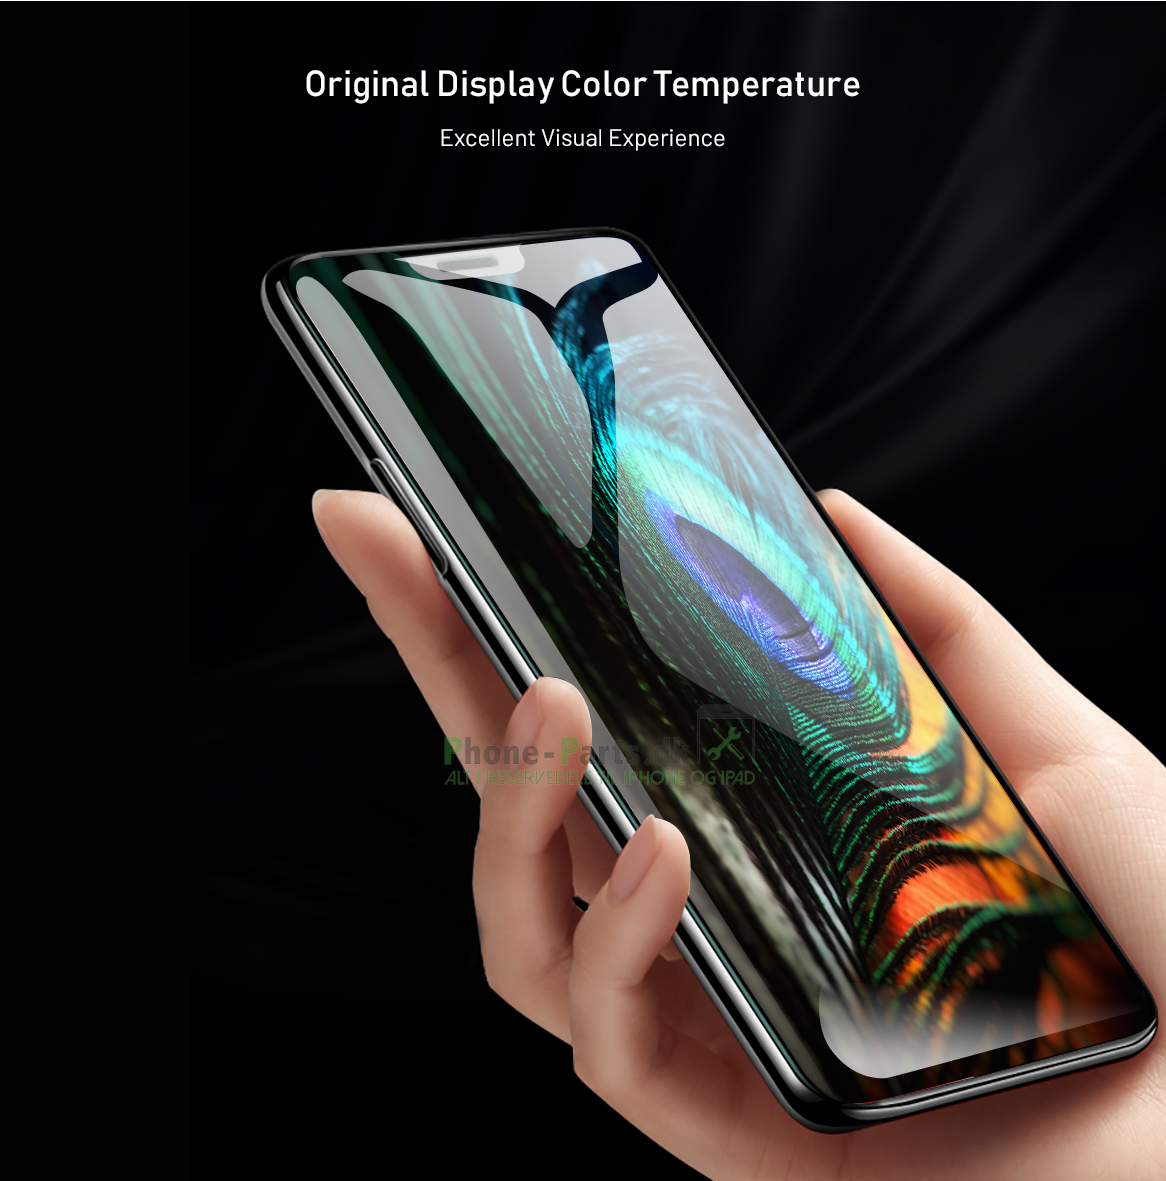 iPhone X GX OLED